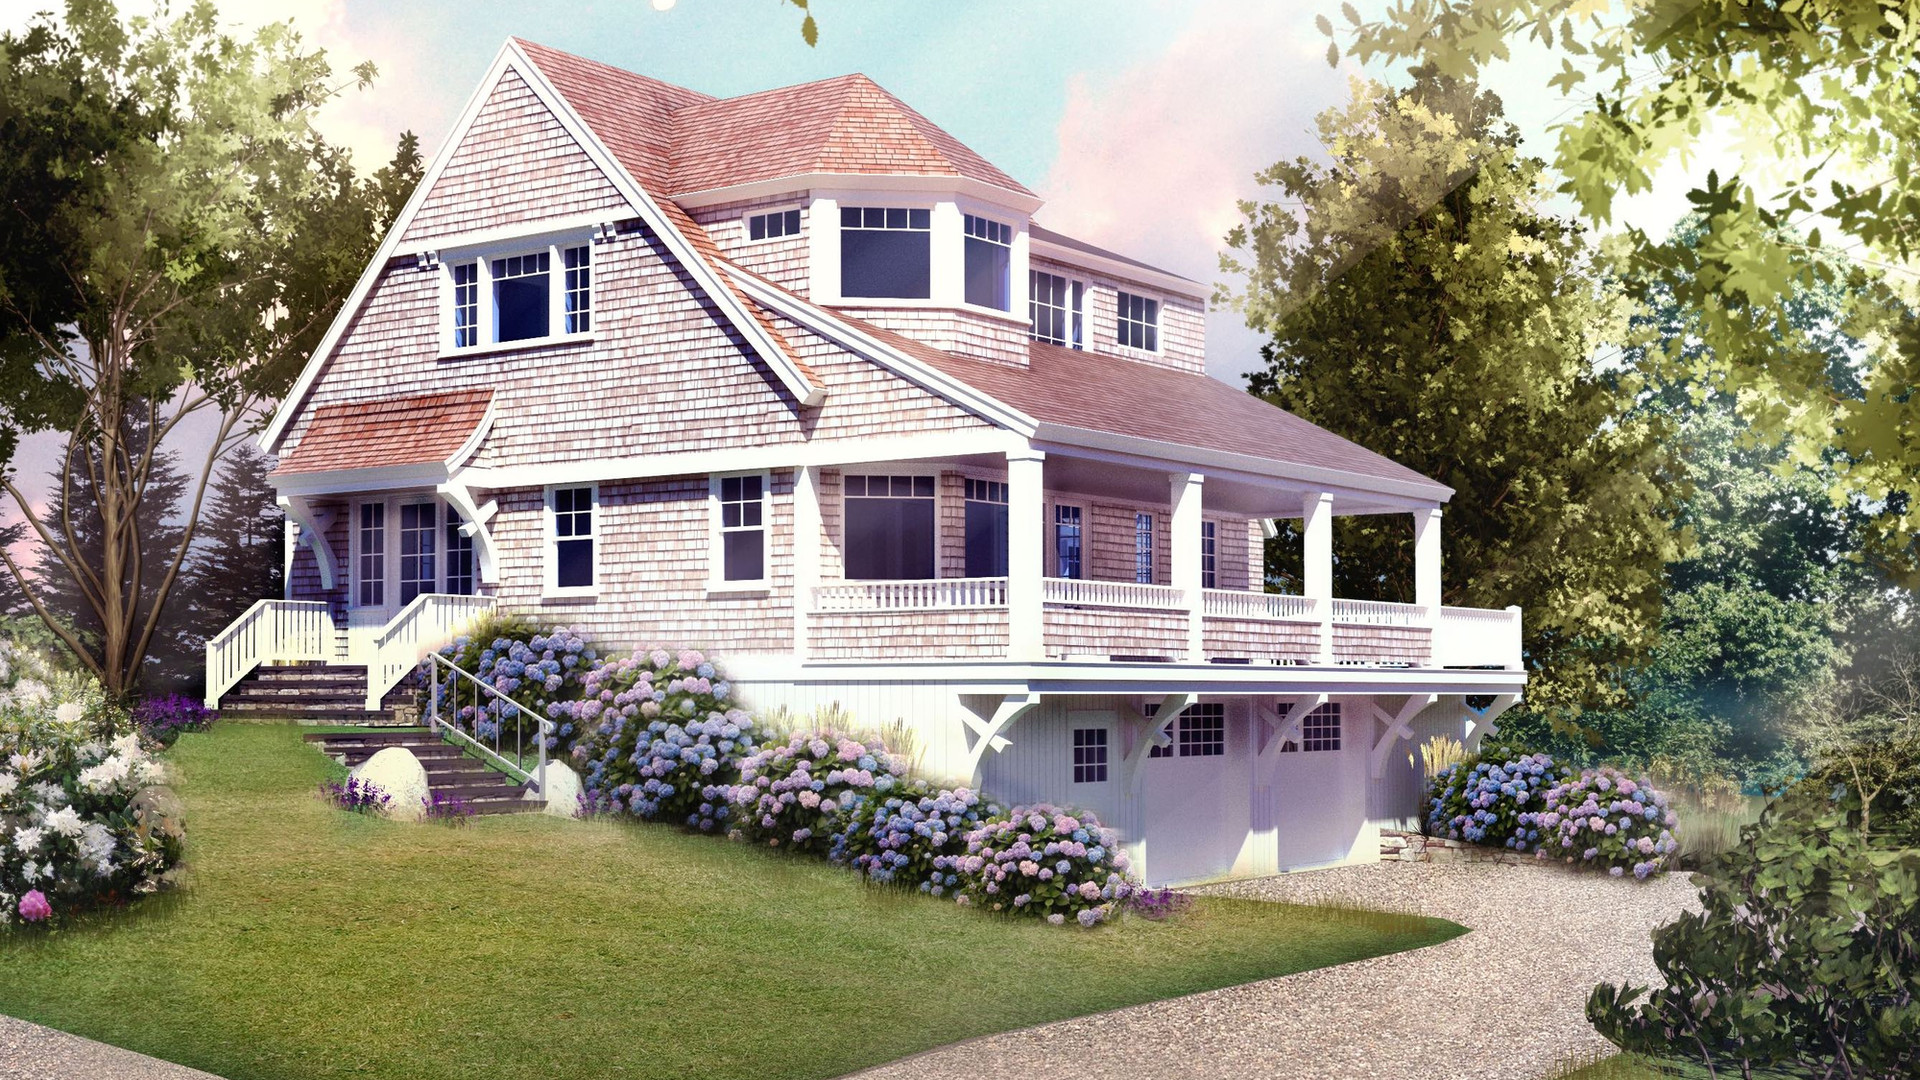 Digital Rendering of The Cottage